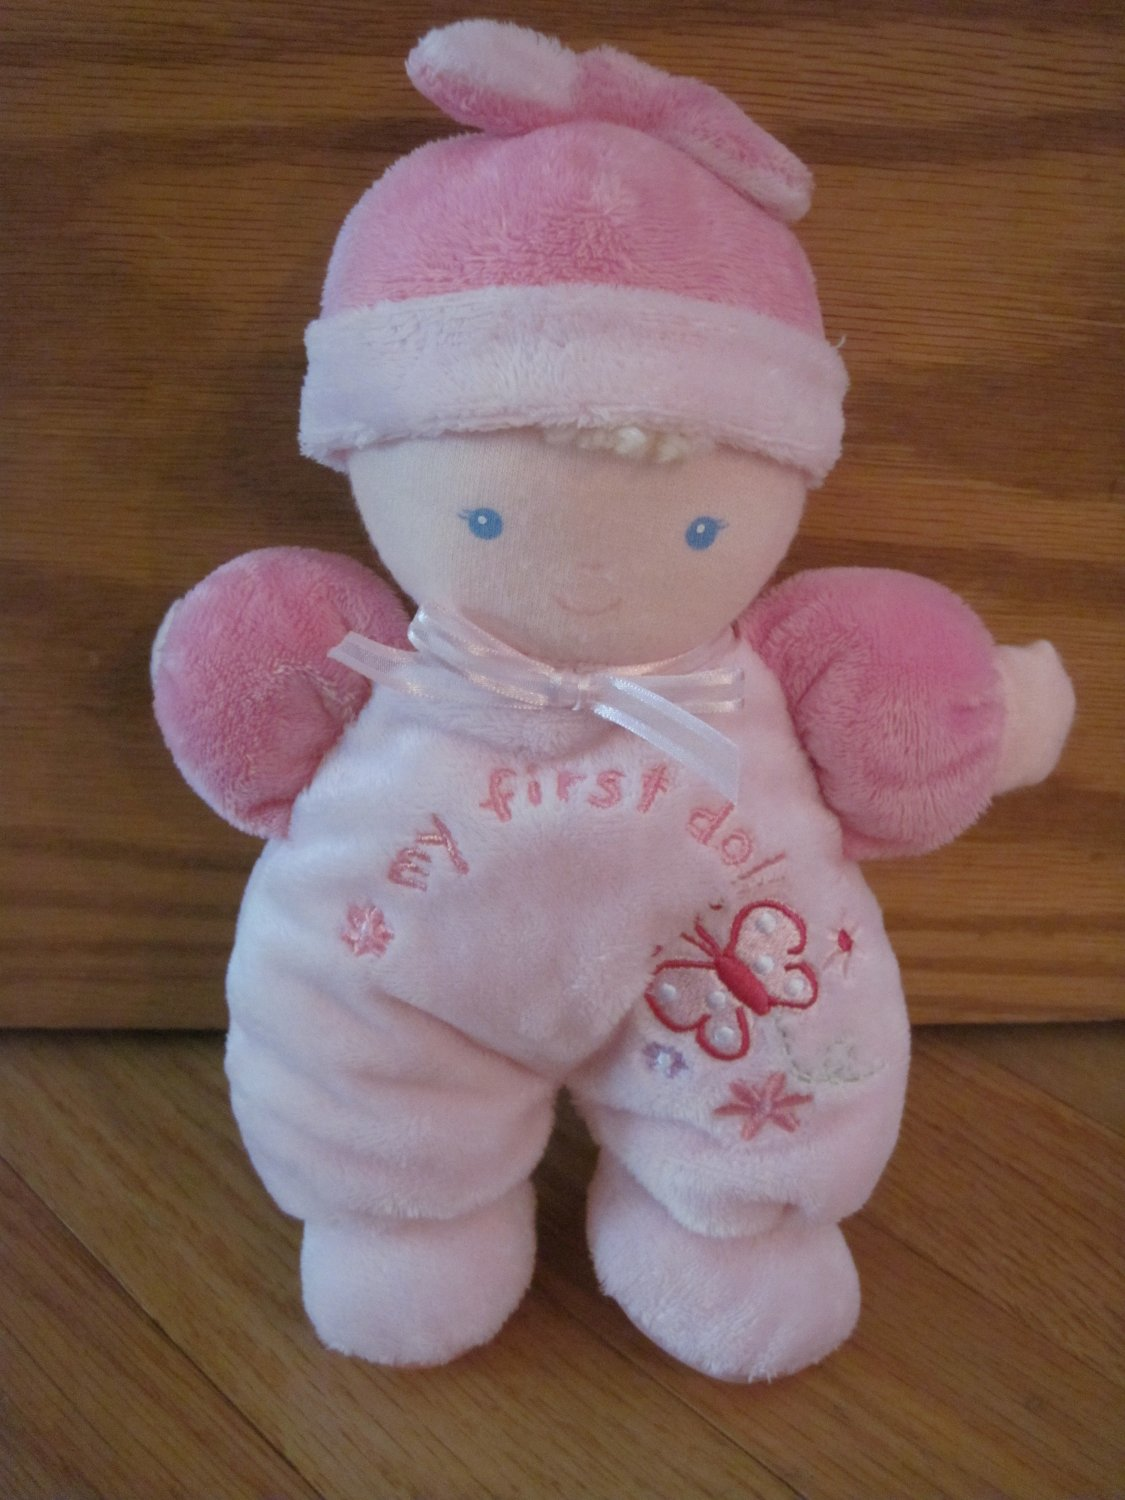 Carters Just One Year My First Doll Blond Pink Velour Outfit Hat Butterfly Flowers Rattle